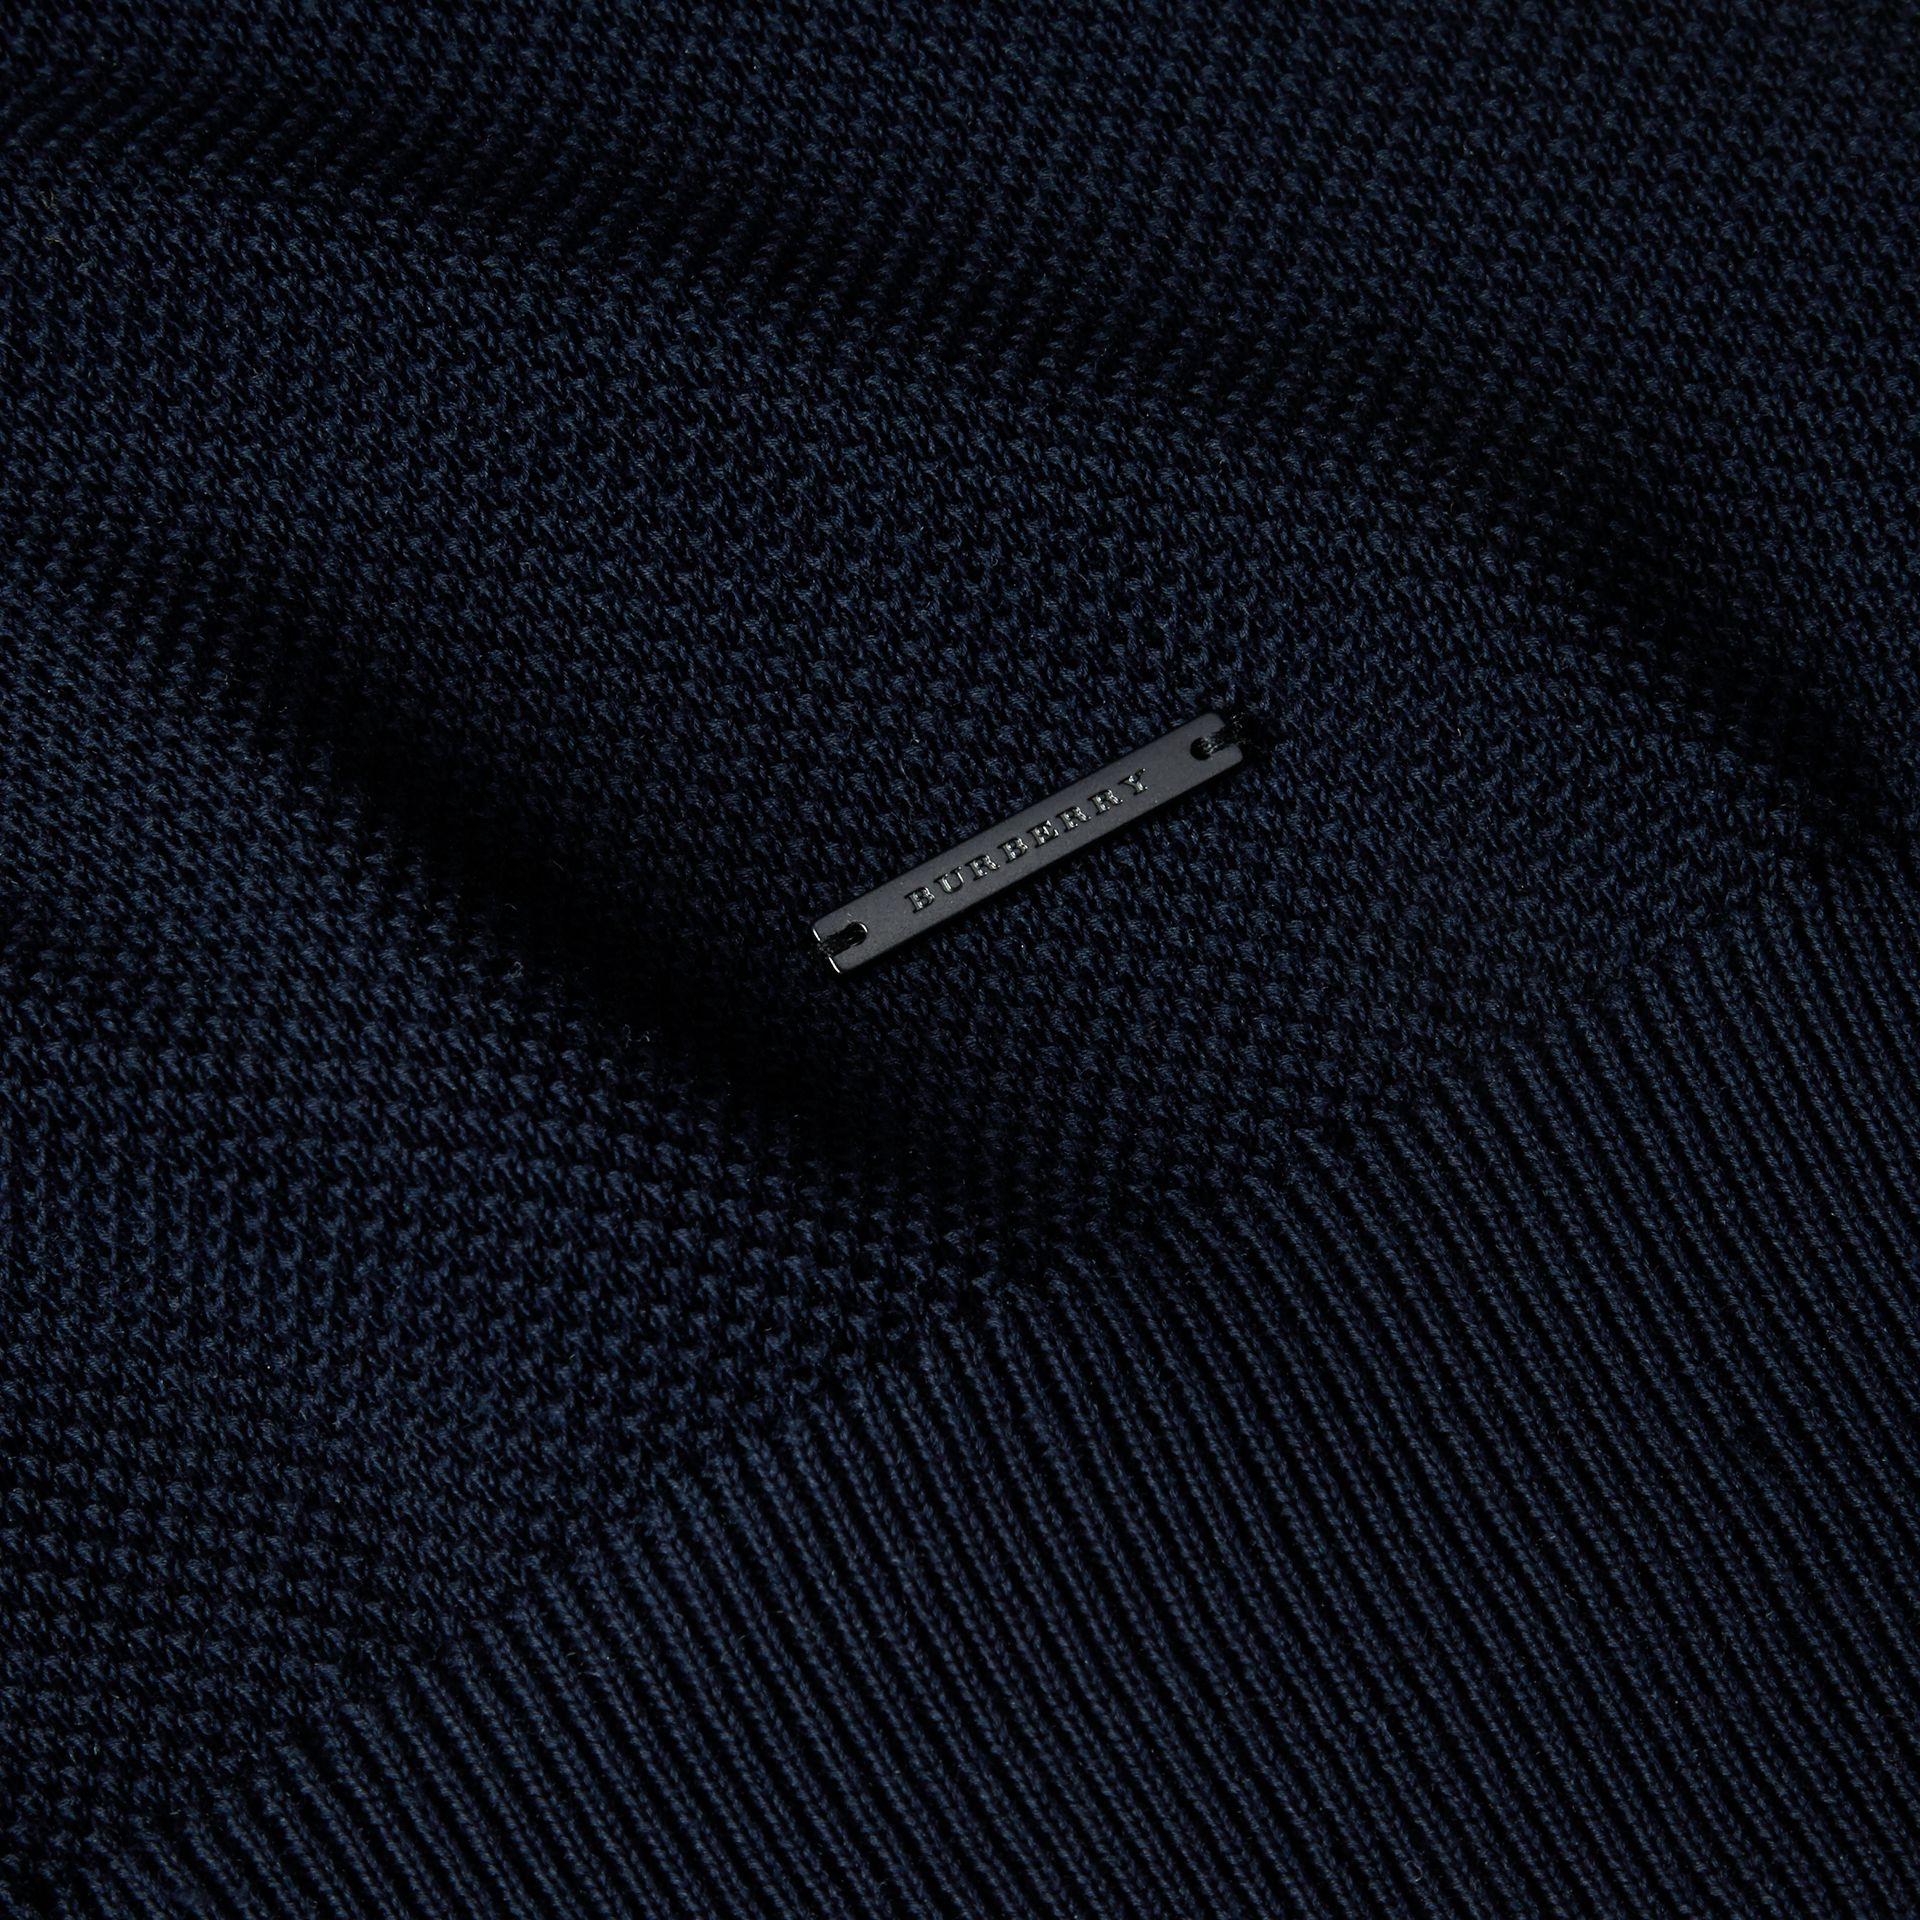 Crew Neck Textured Cotton Sweater in Navy - Men | Burberry - gallery image 1